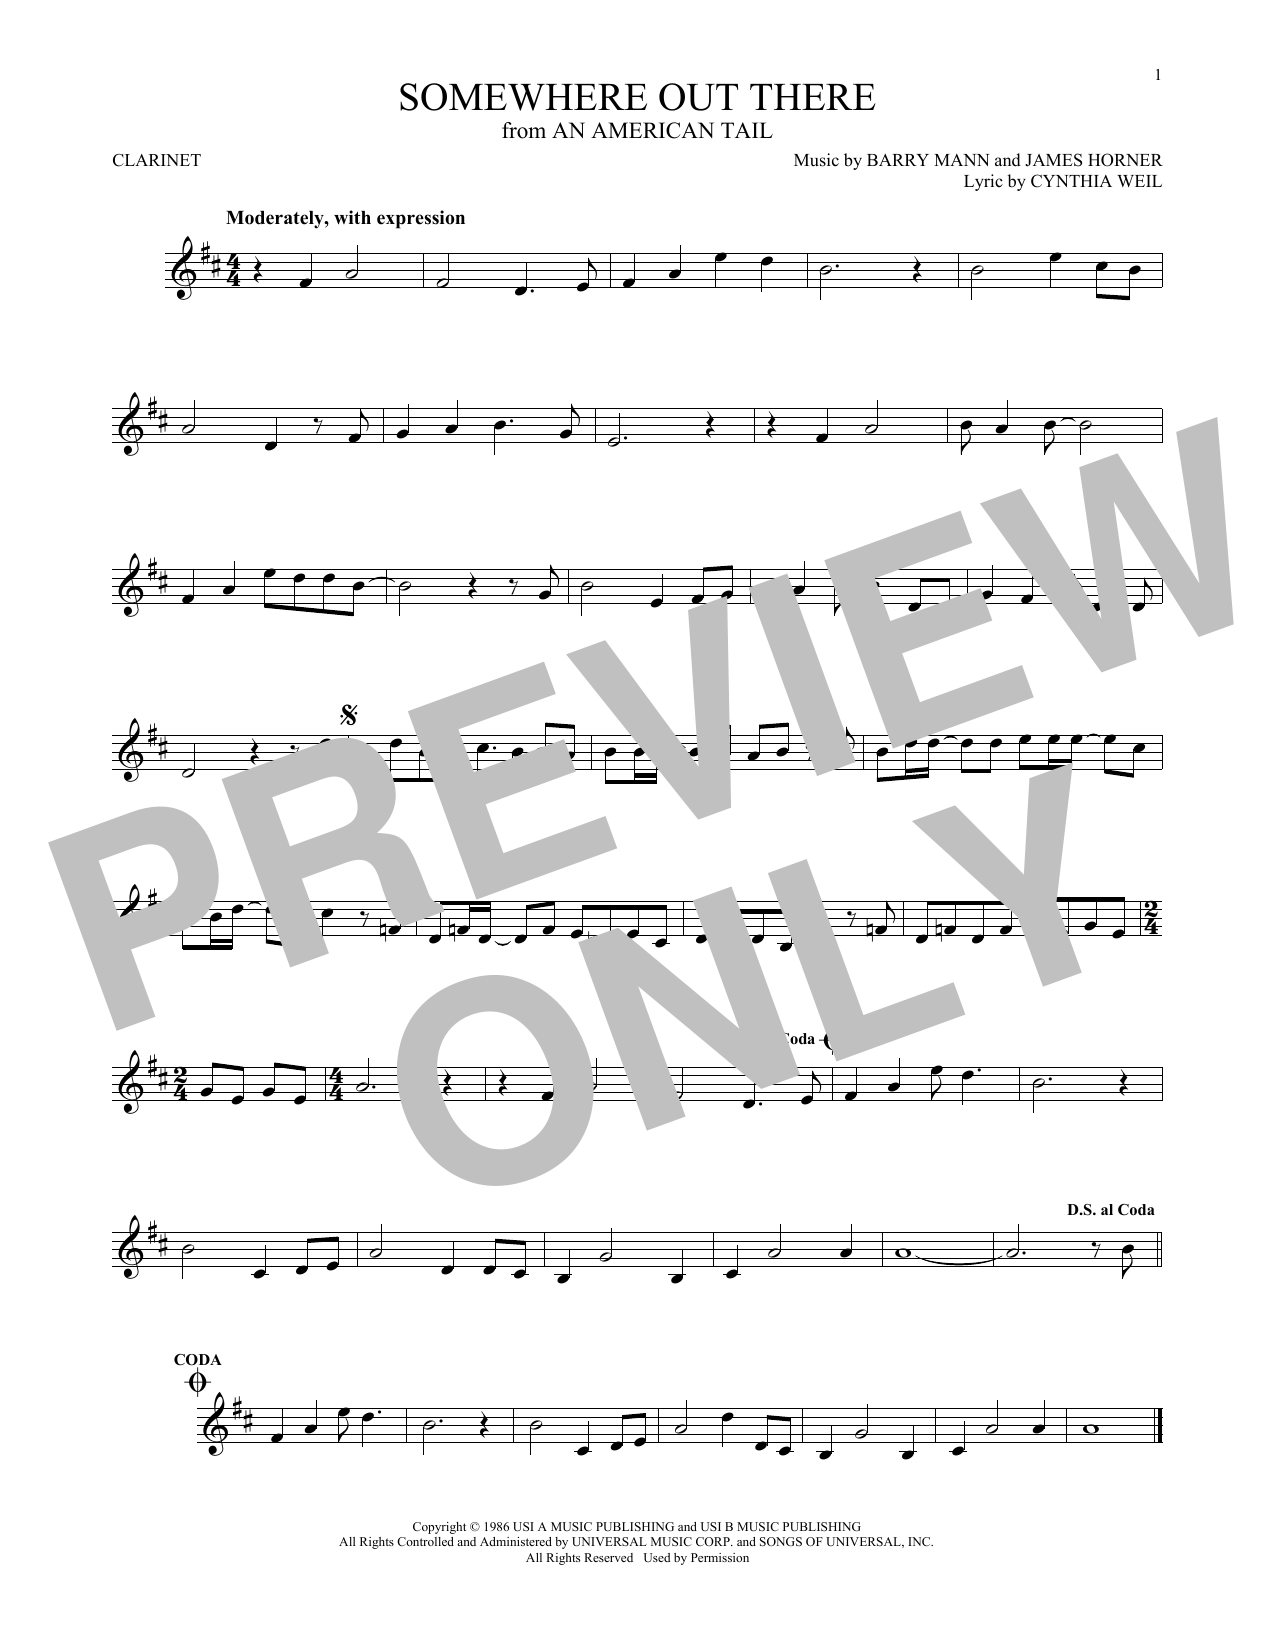 Somewhere Out There Learn An American Tale PIANO Guitar PVG Music Book